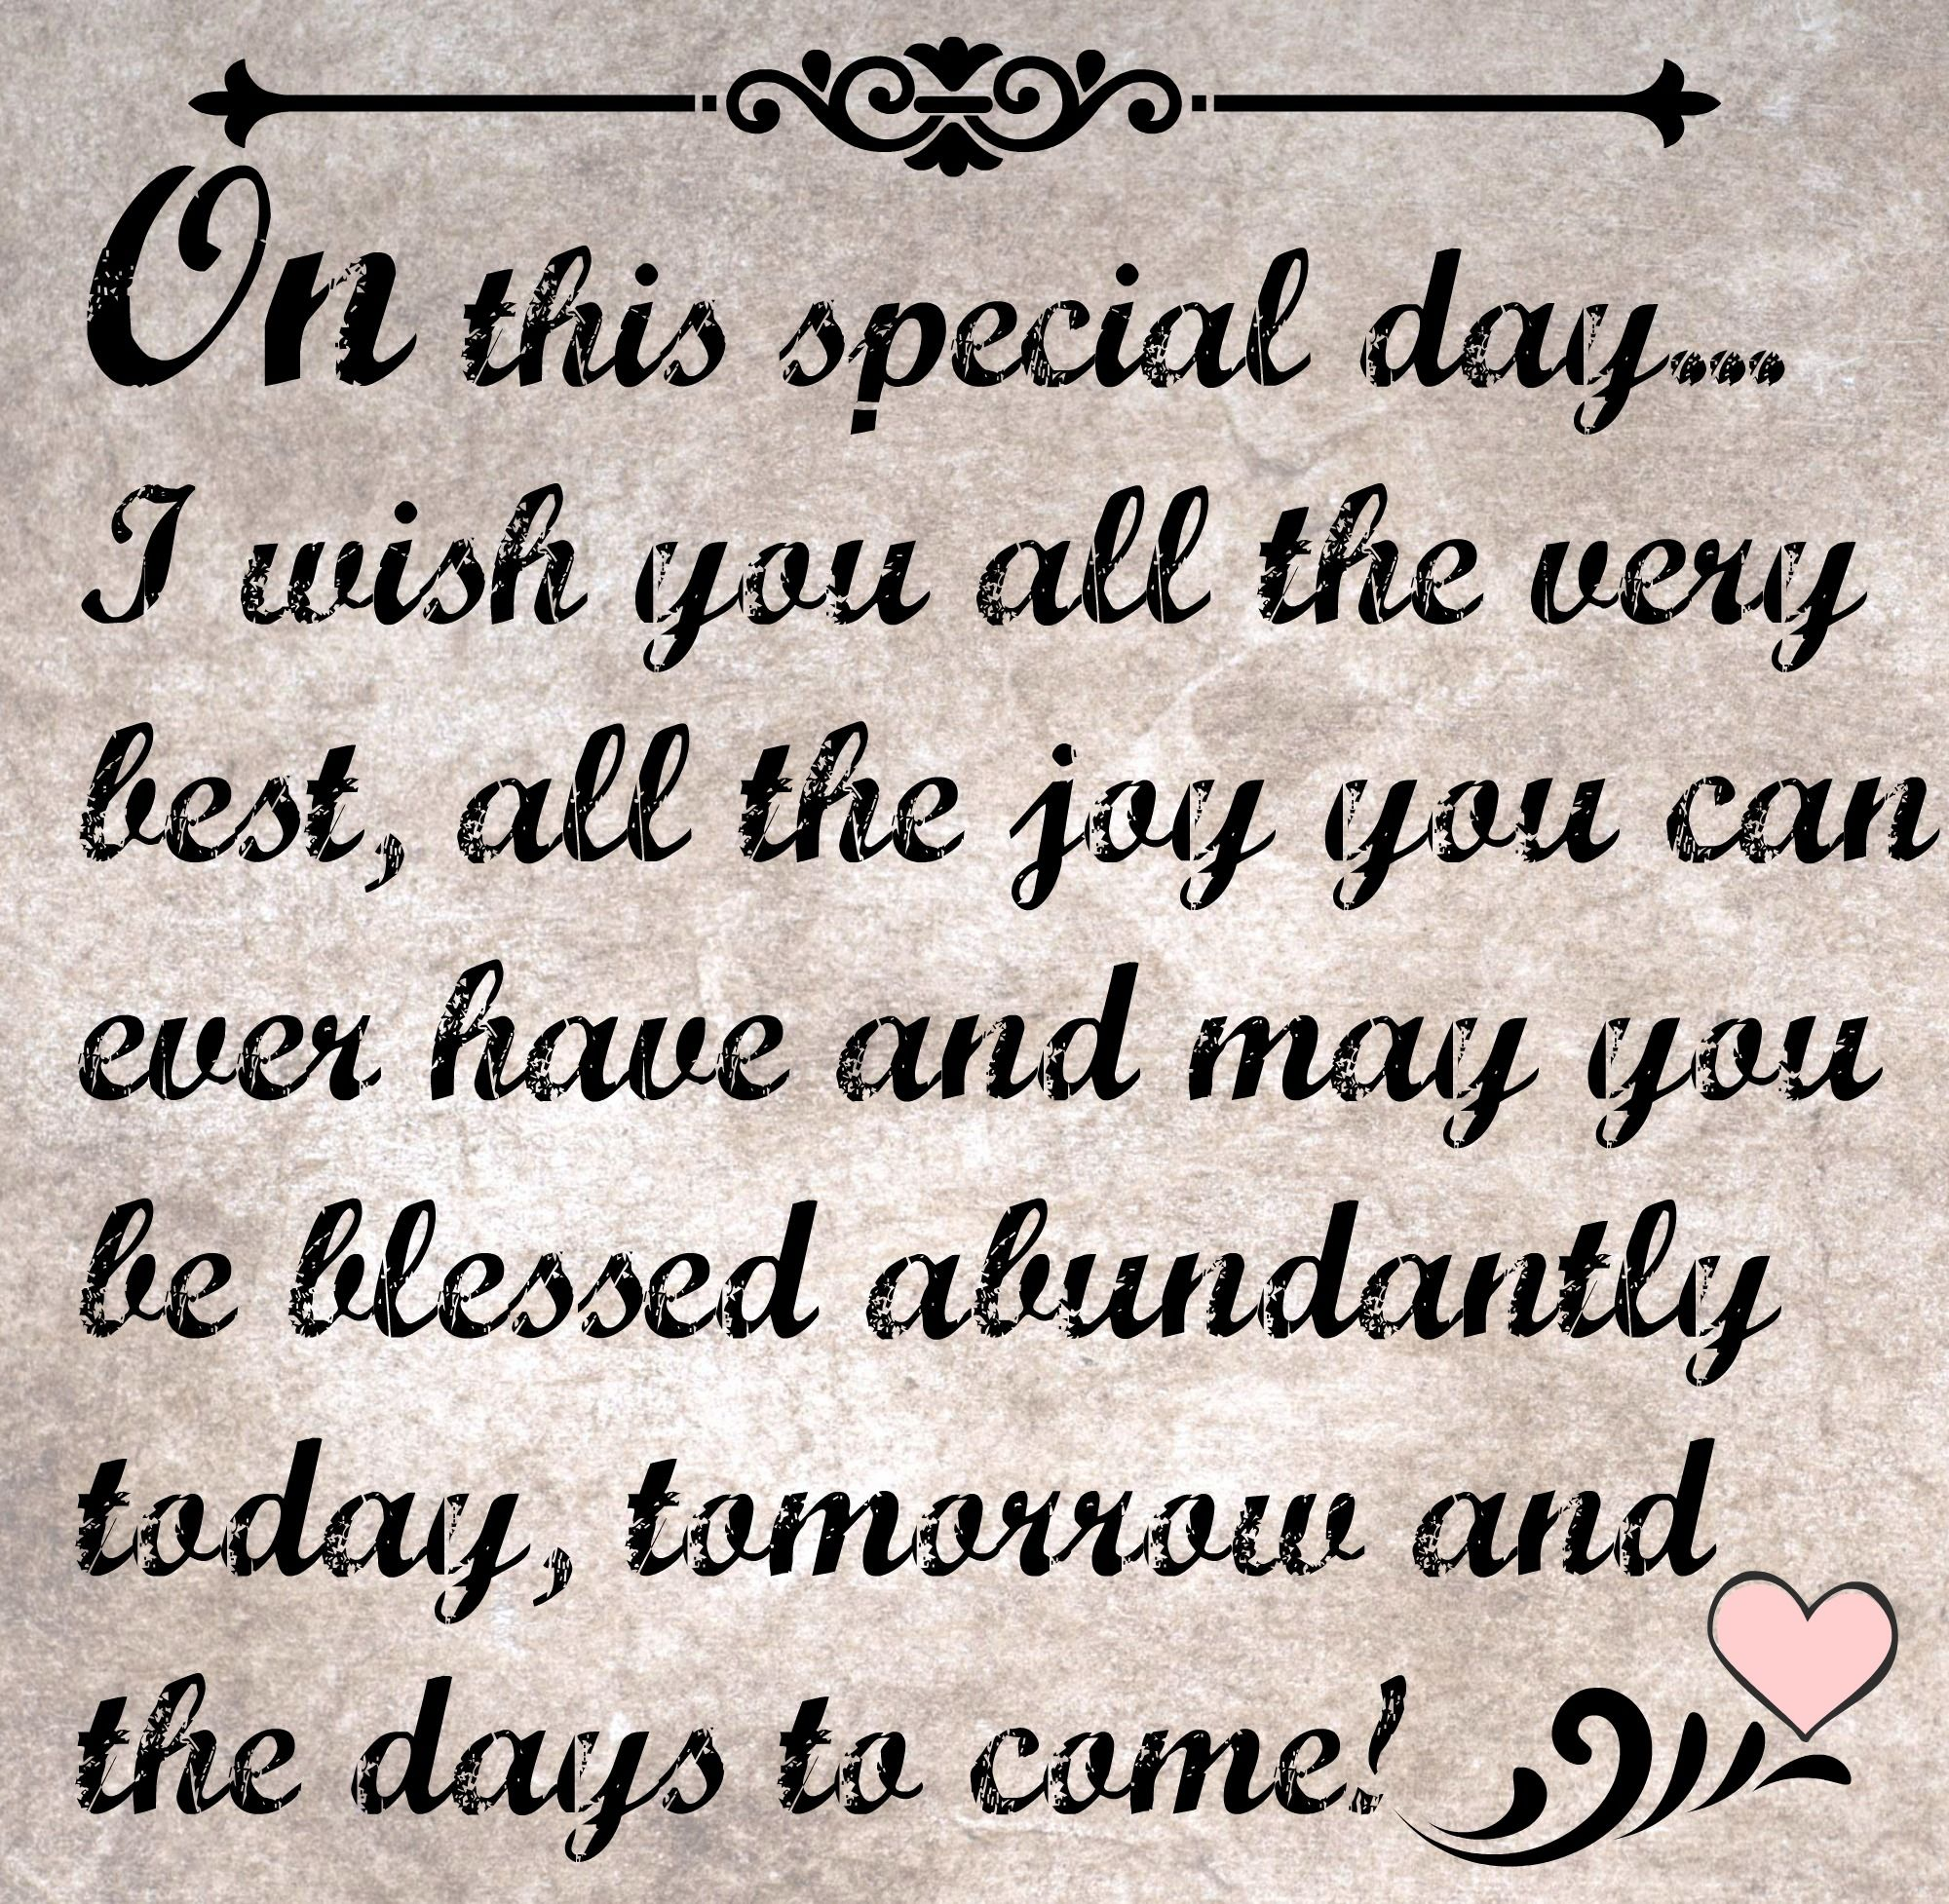 Wedding Blessing Quotes.Today I Count The Many Blessings Birthday Sayings Birthday